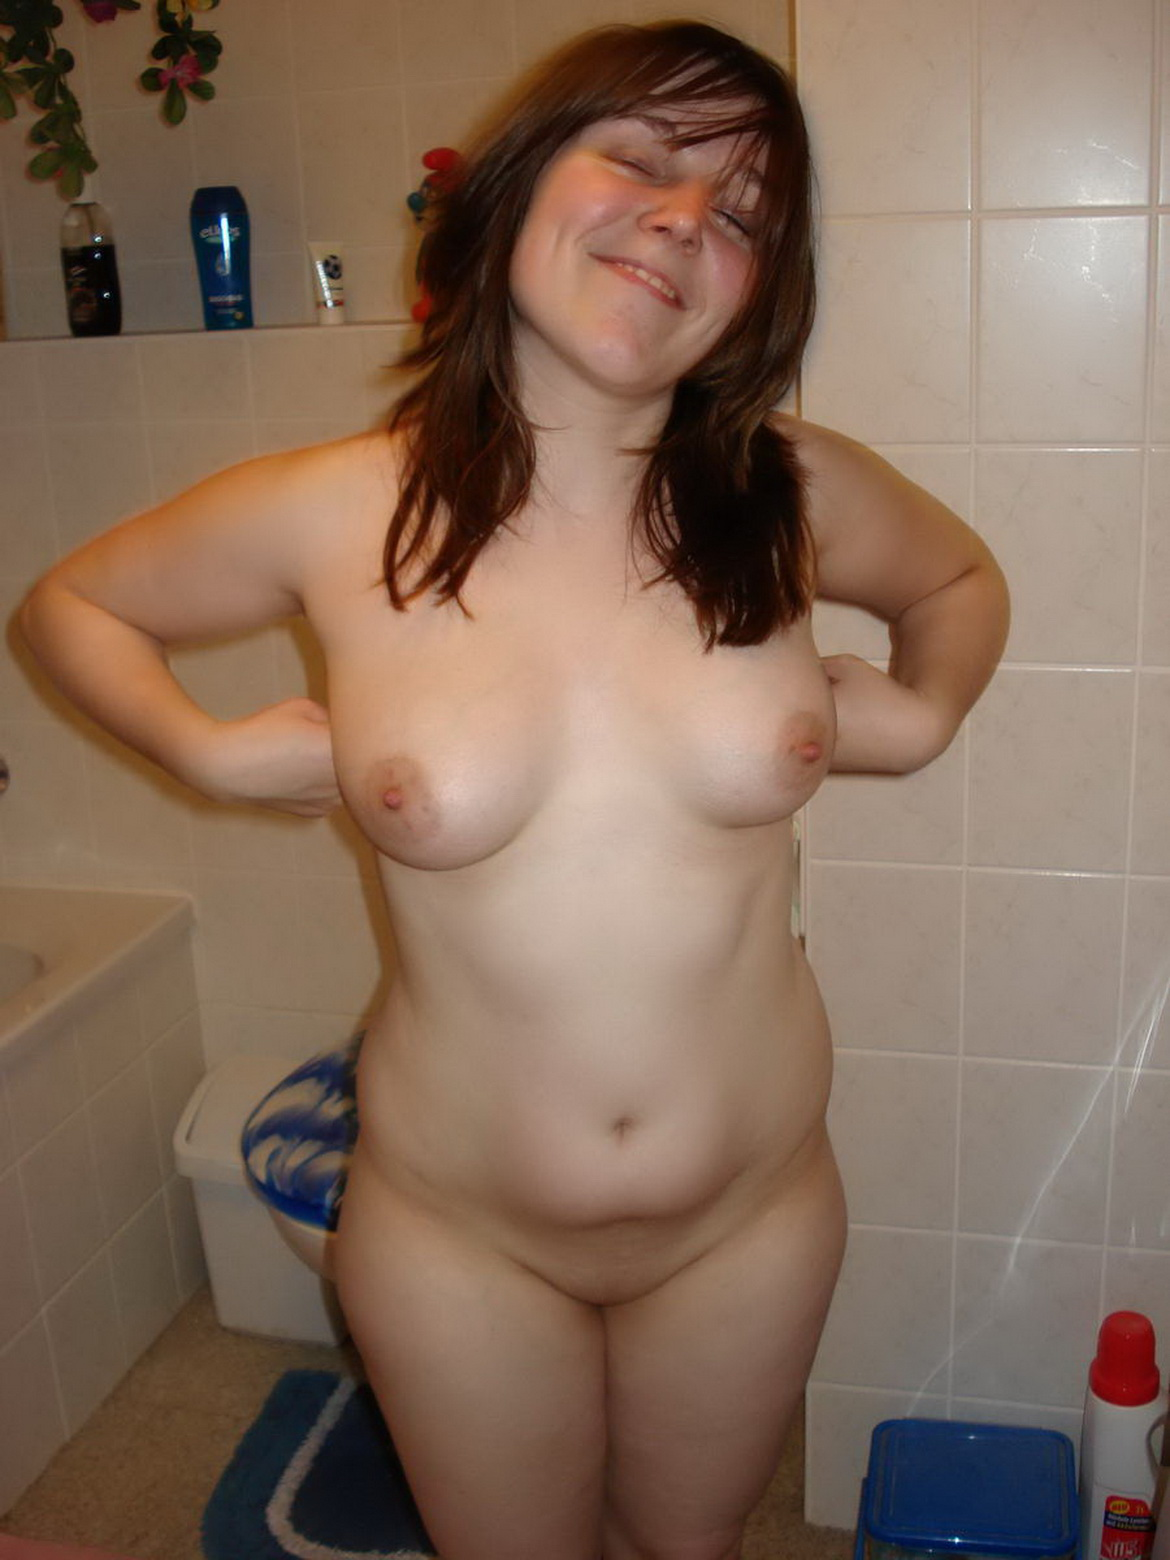 girlfriend naked